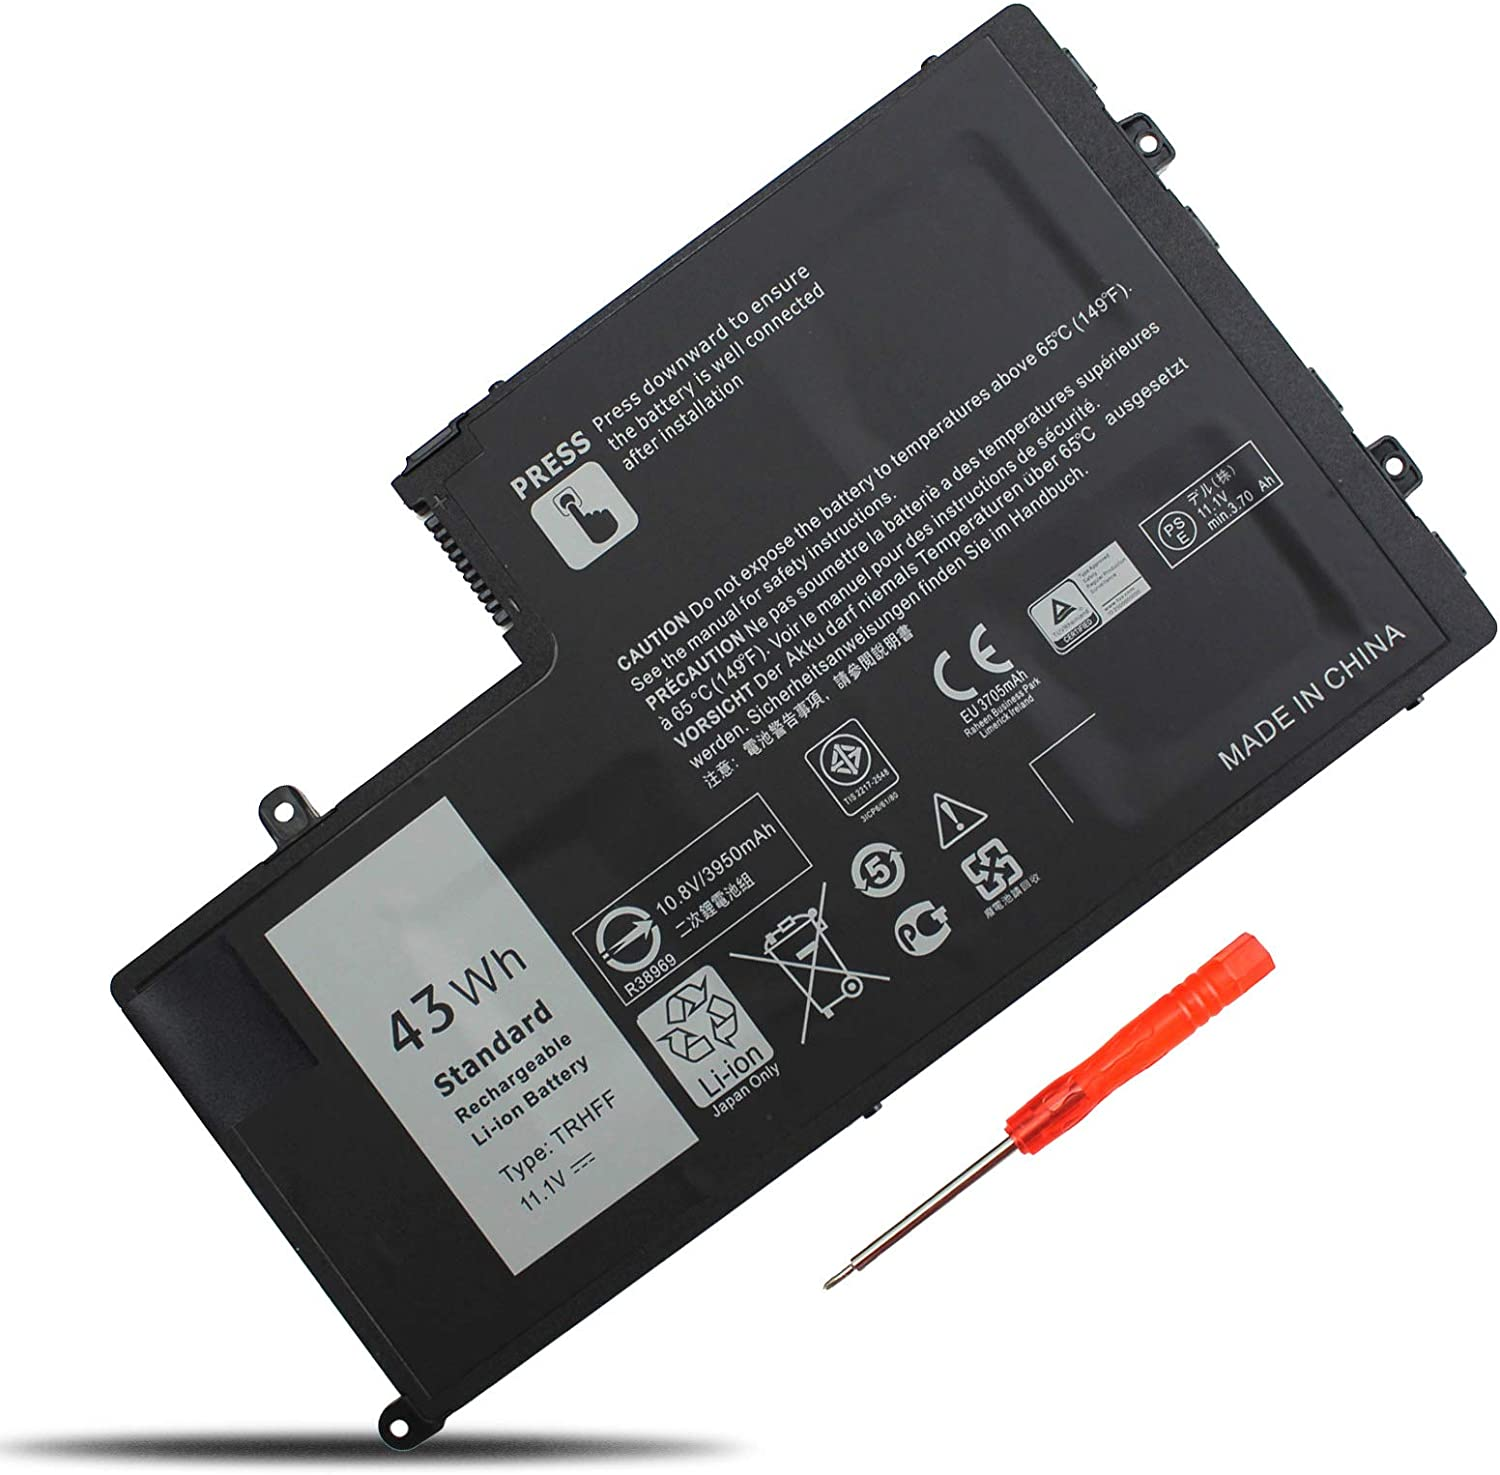 LXHY TRHFF 11.1V 43Wh 7600mAh Laptop Battery Compatible with Dell Inspiron 5447 5448 15-5548 14-5447 14-5448 15-5542 N5447 N5547 Latitude 3450 3550 15 3550 Replacement P39F 1V2F6 01v2f6 0PD19